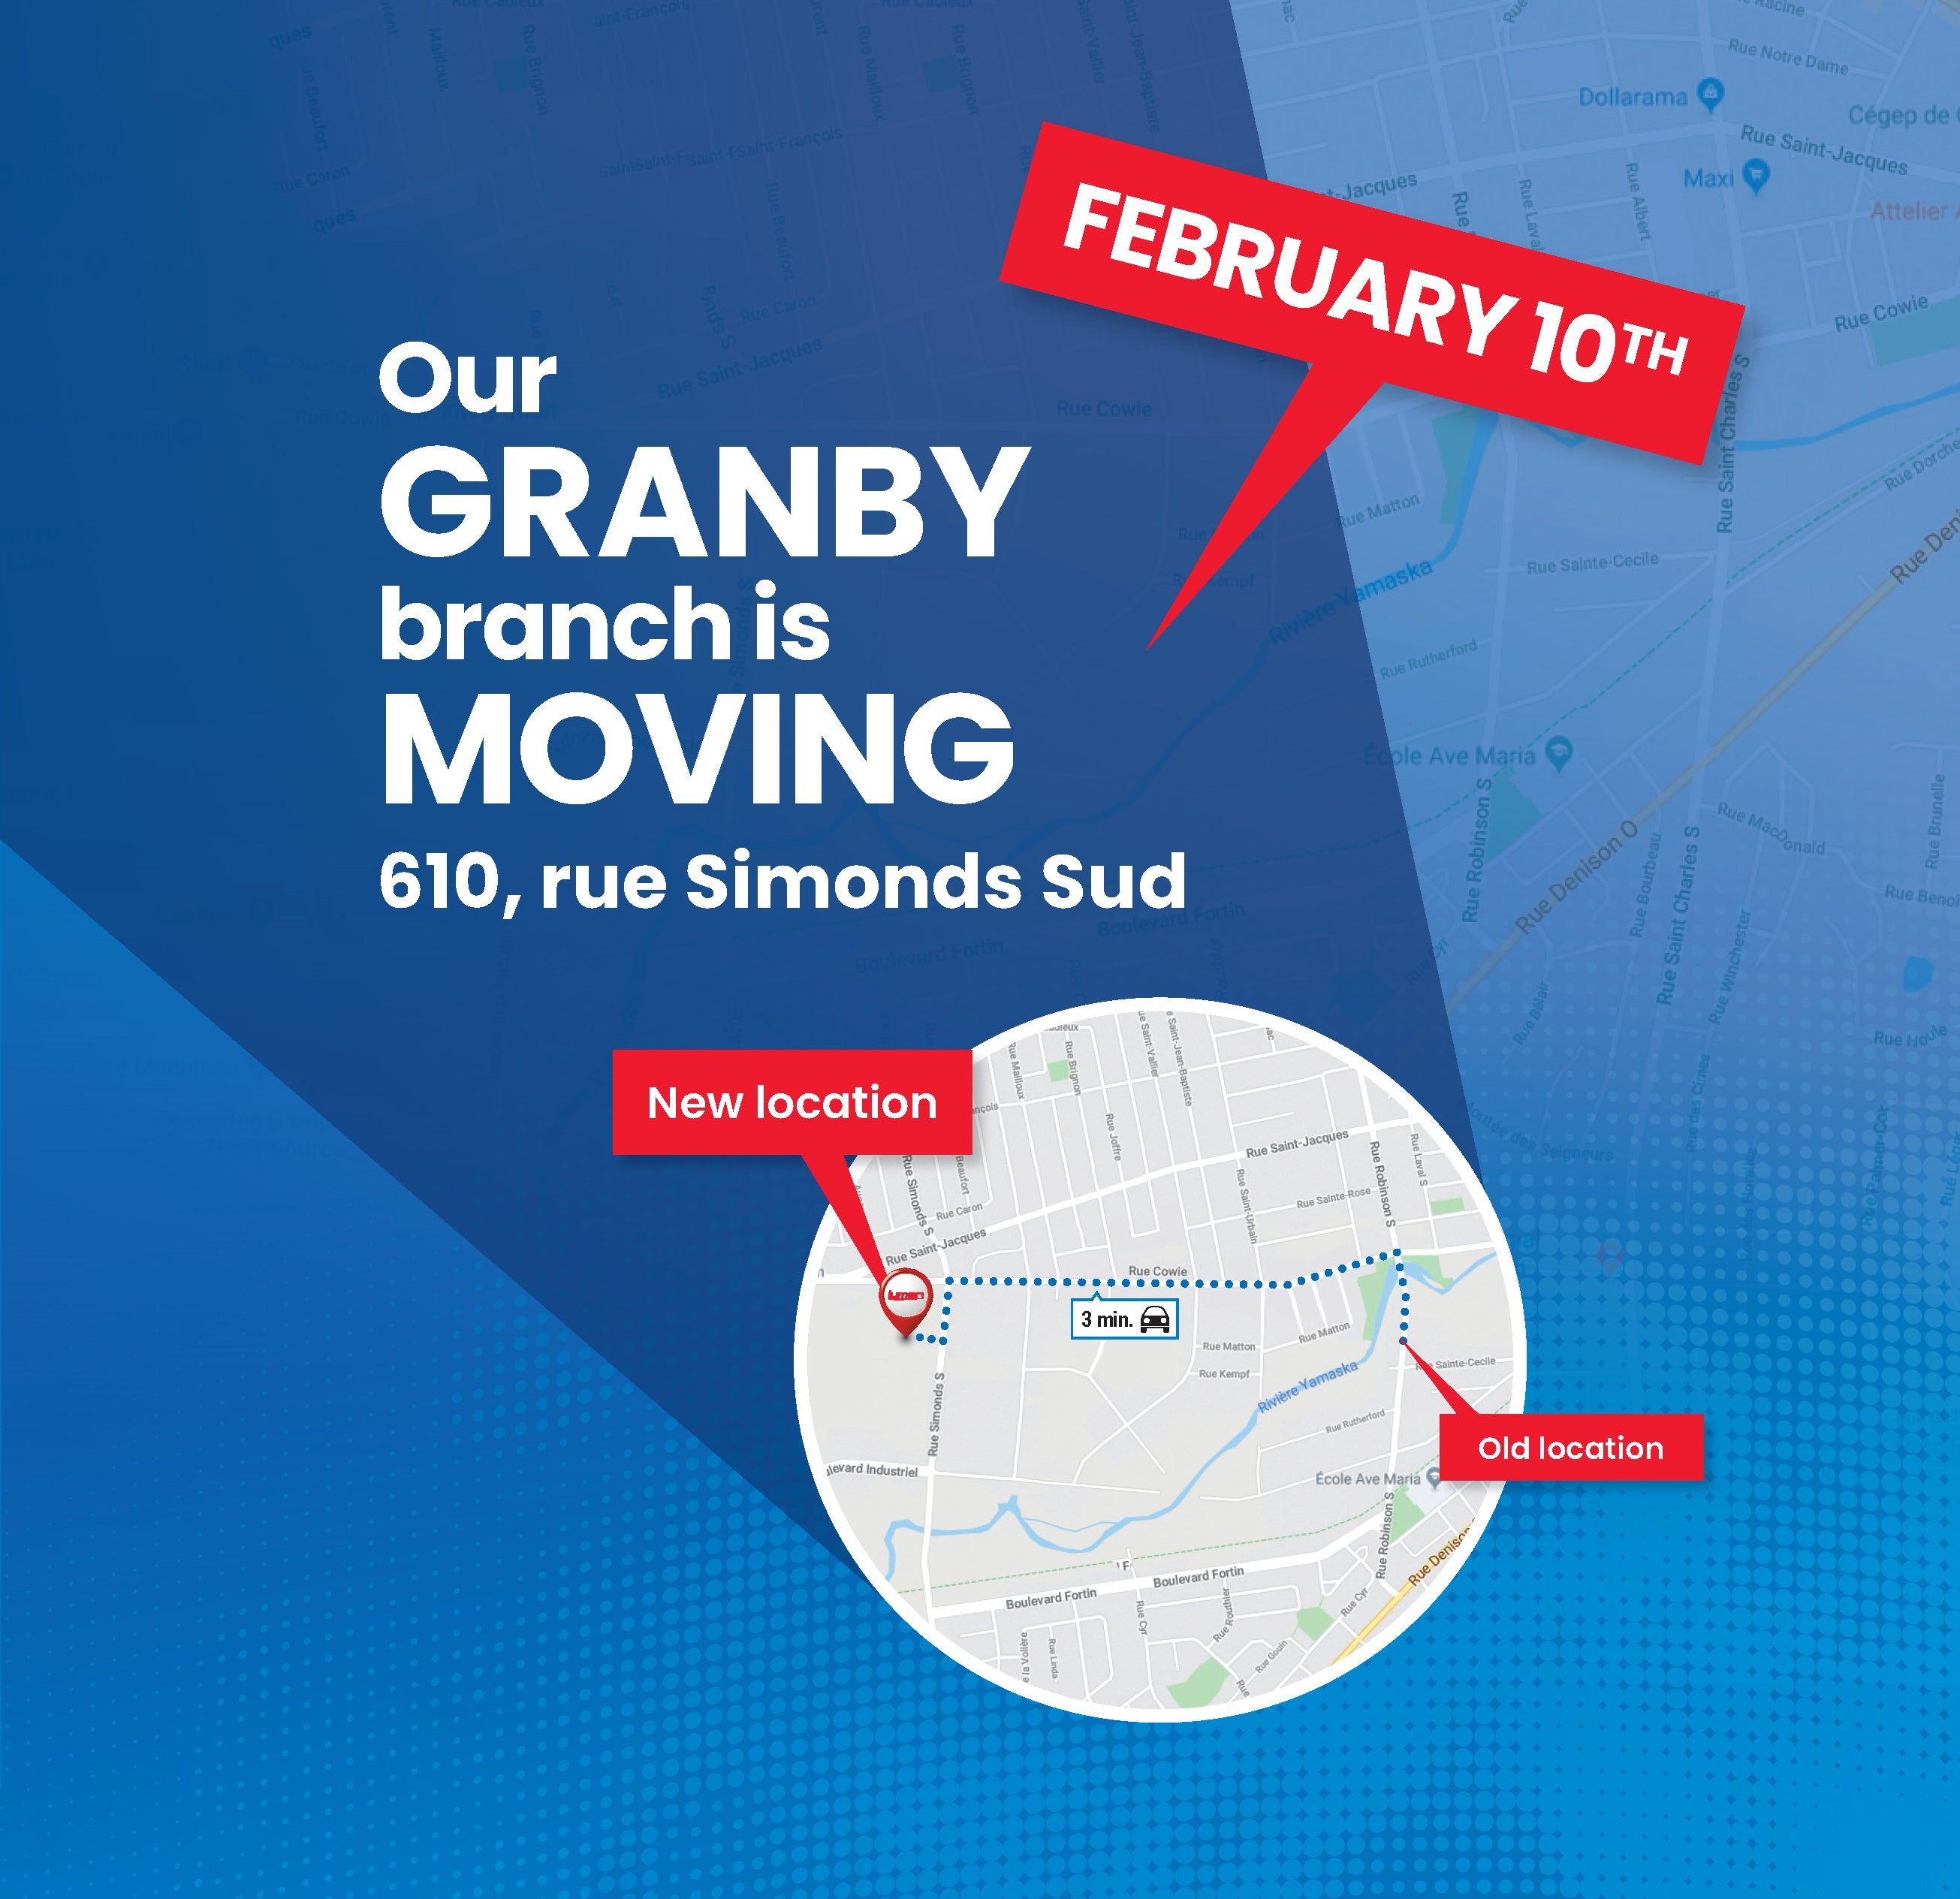 Our Granby branch is moving